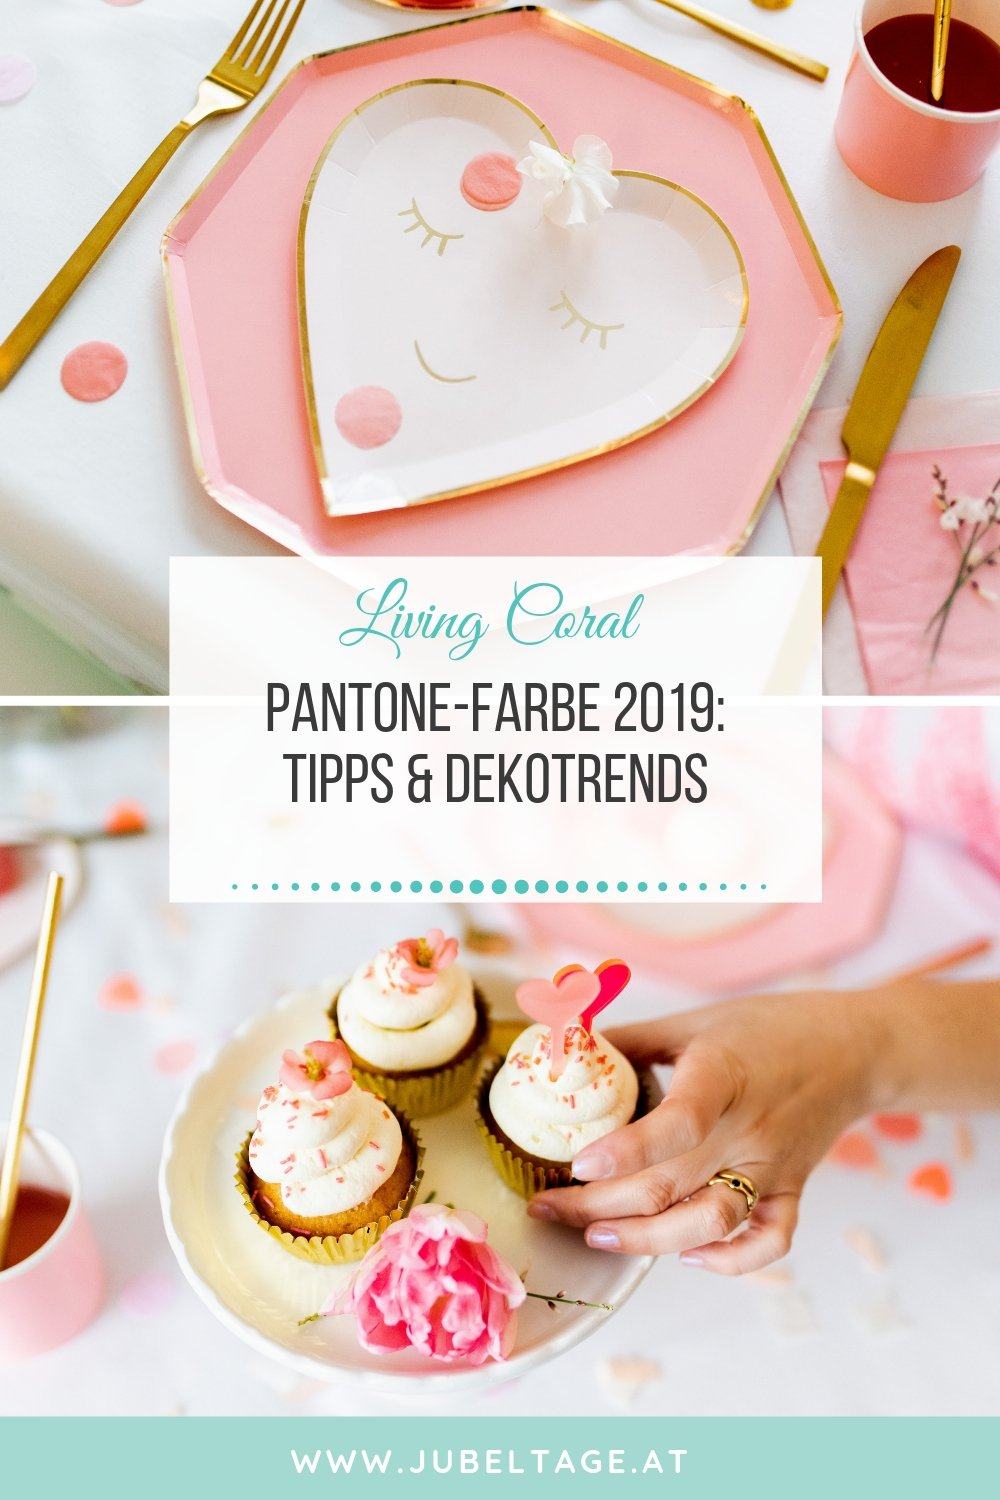 Coral Living Pantone Farbe 2019: Tipps und Dekotrends